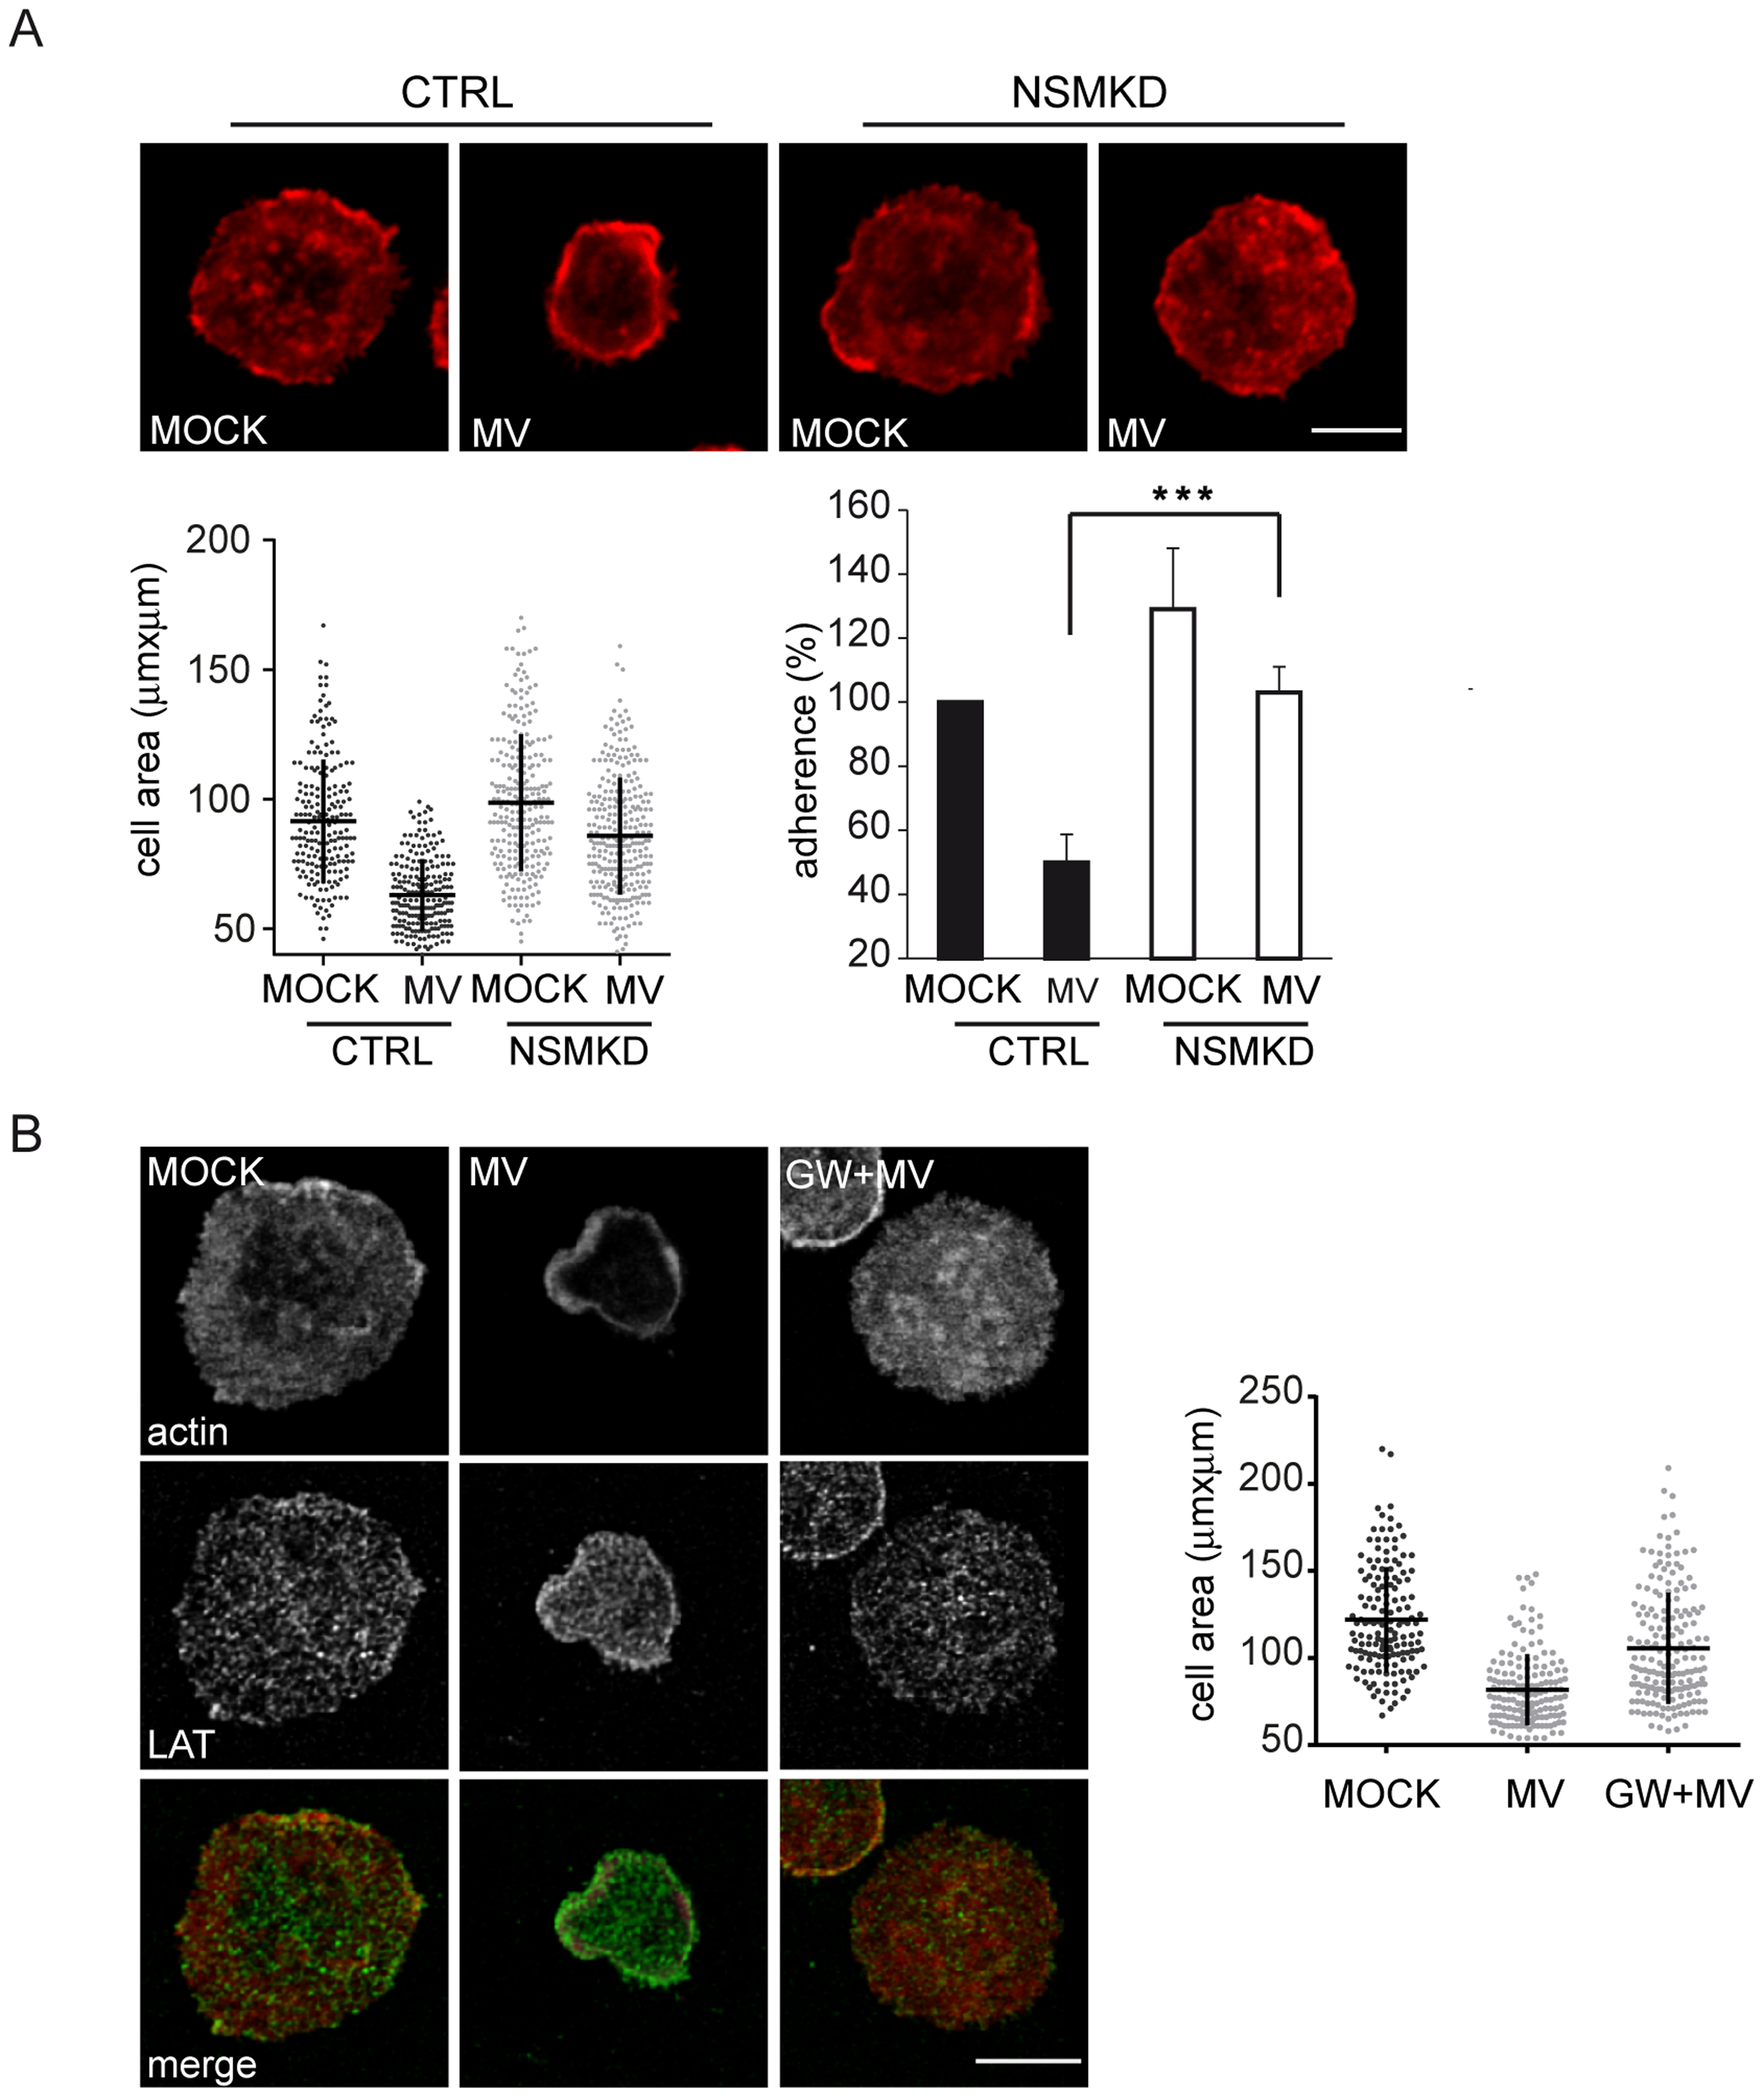 MV-mediated NSM activation accounts for the loss of spreading responses.